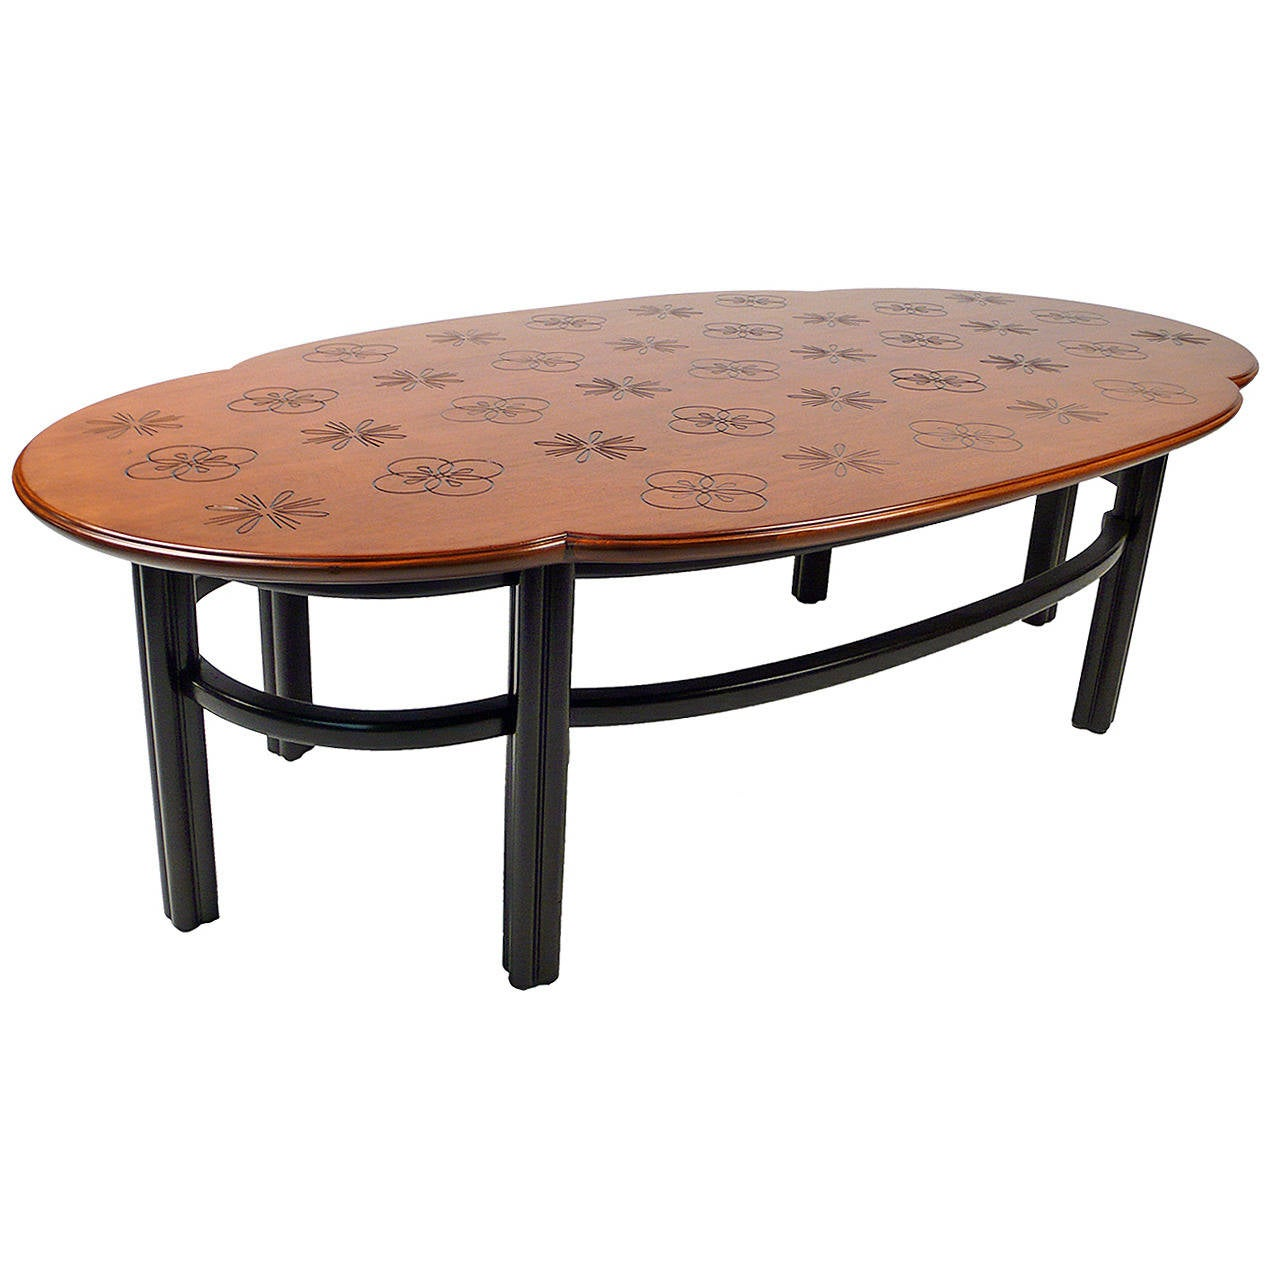 Baker coffee table for sale at 1stdibs Baker coffee table